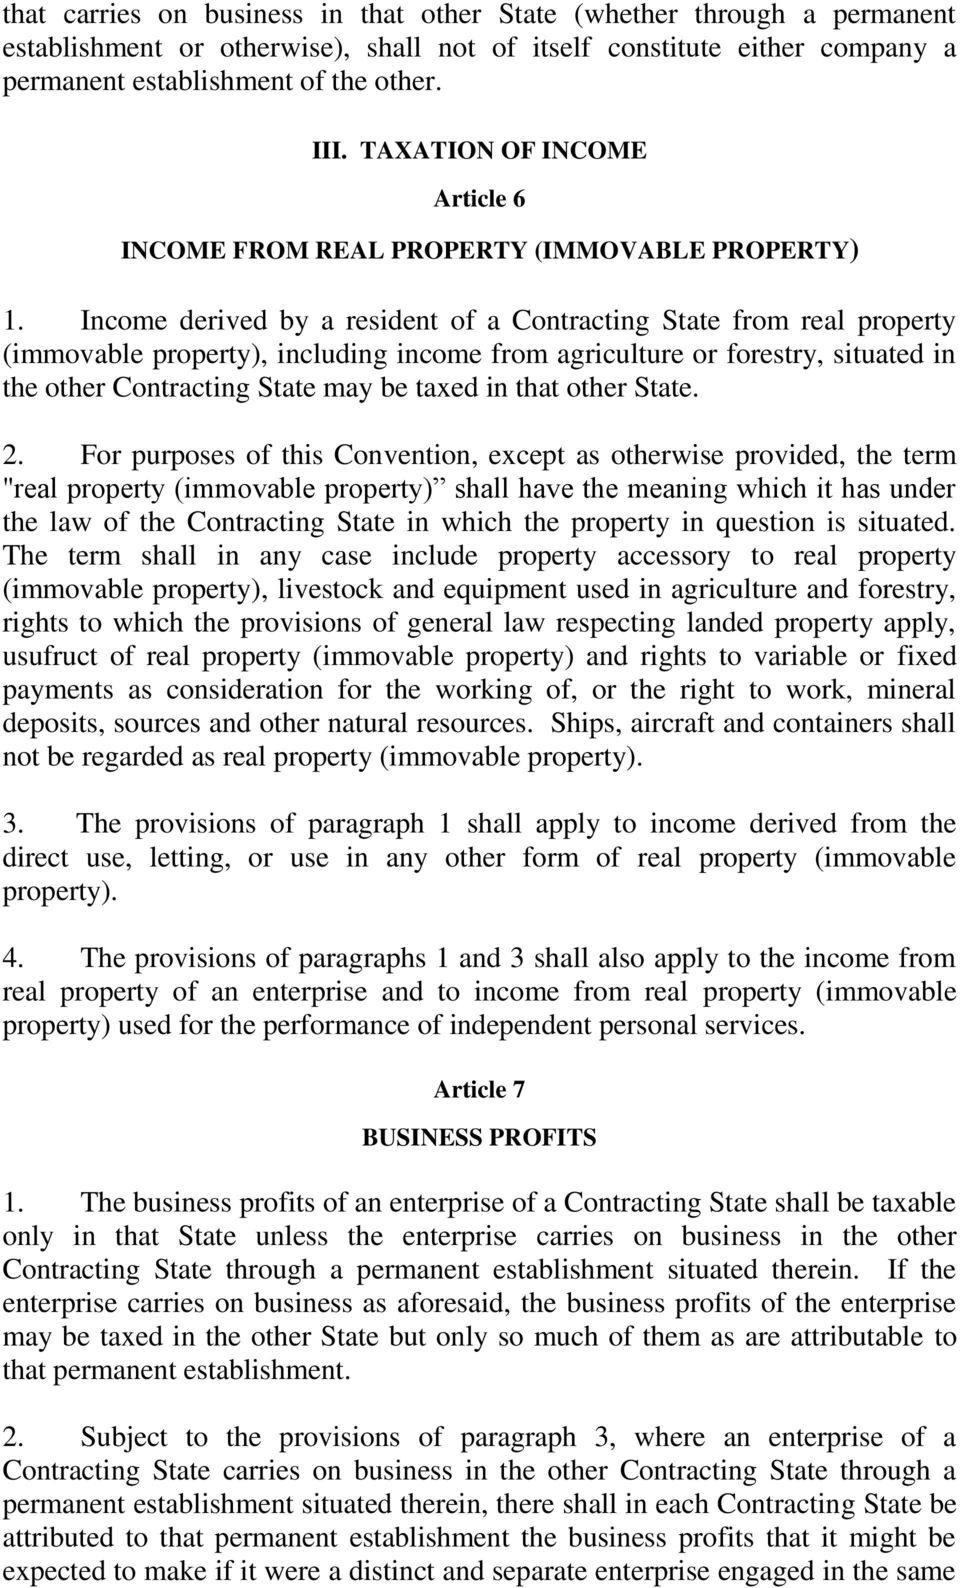 Income derived by a resident of a Contracting State from real property (immovable property), including income from agriculture or forestry, situated in the other Contracting State may be taxed in